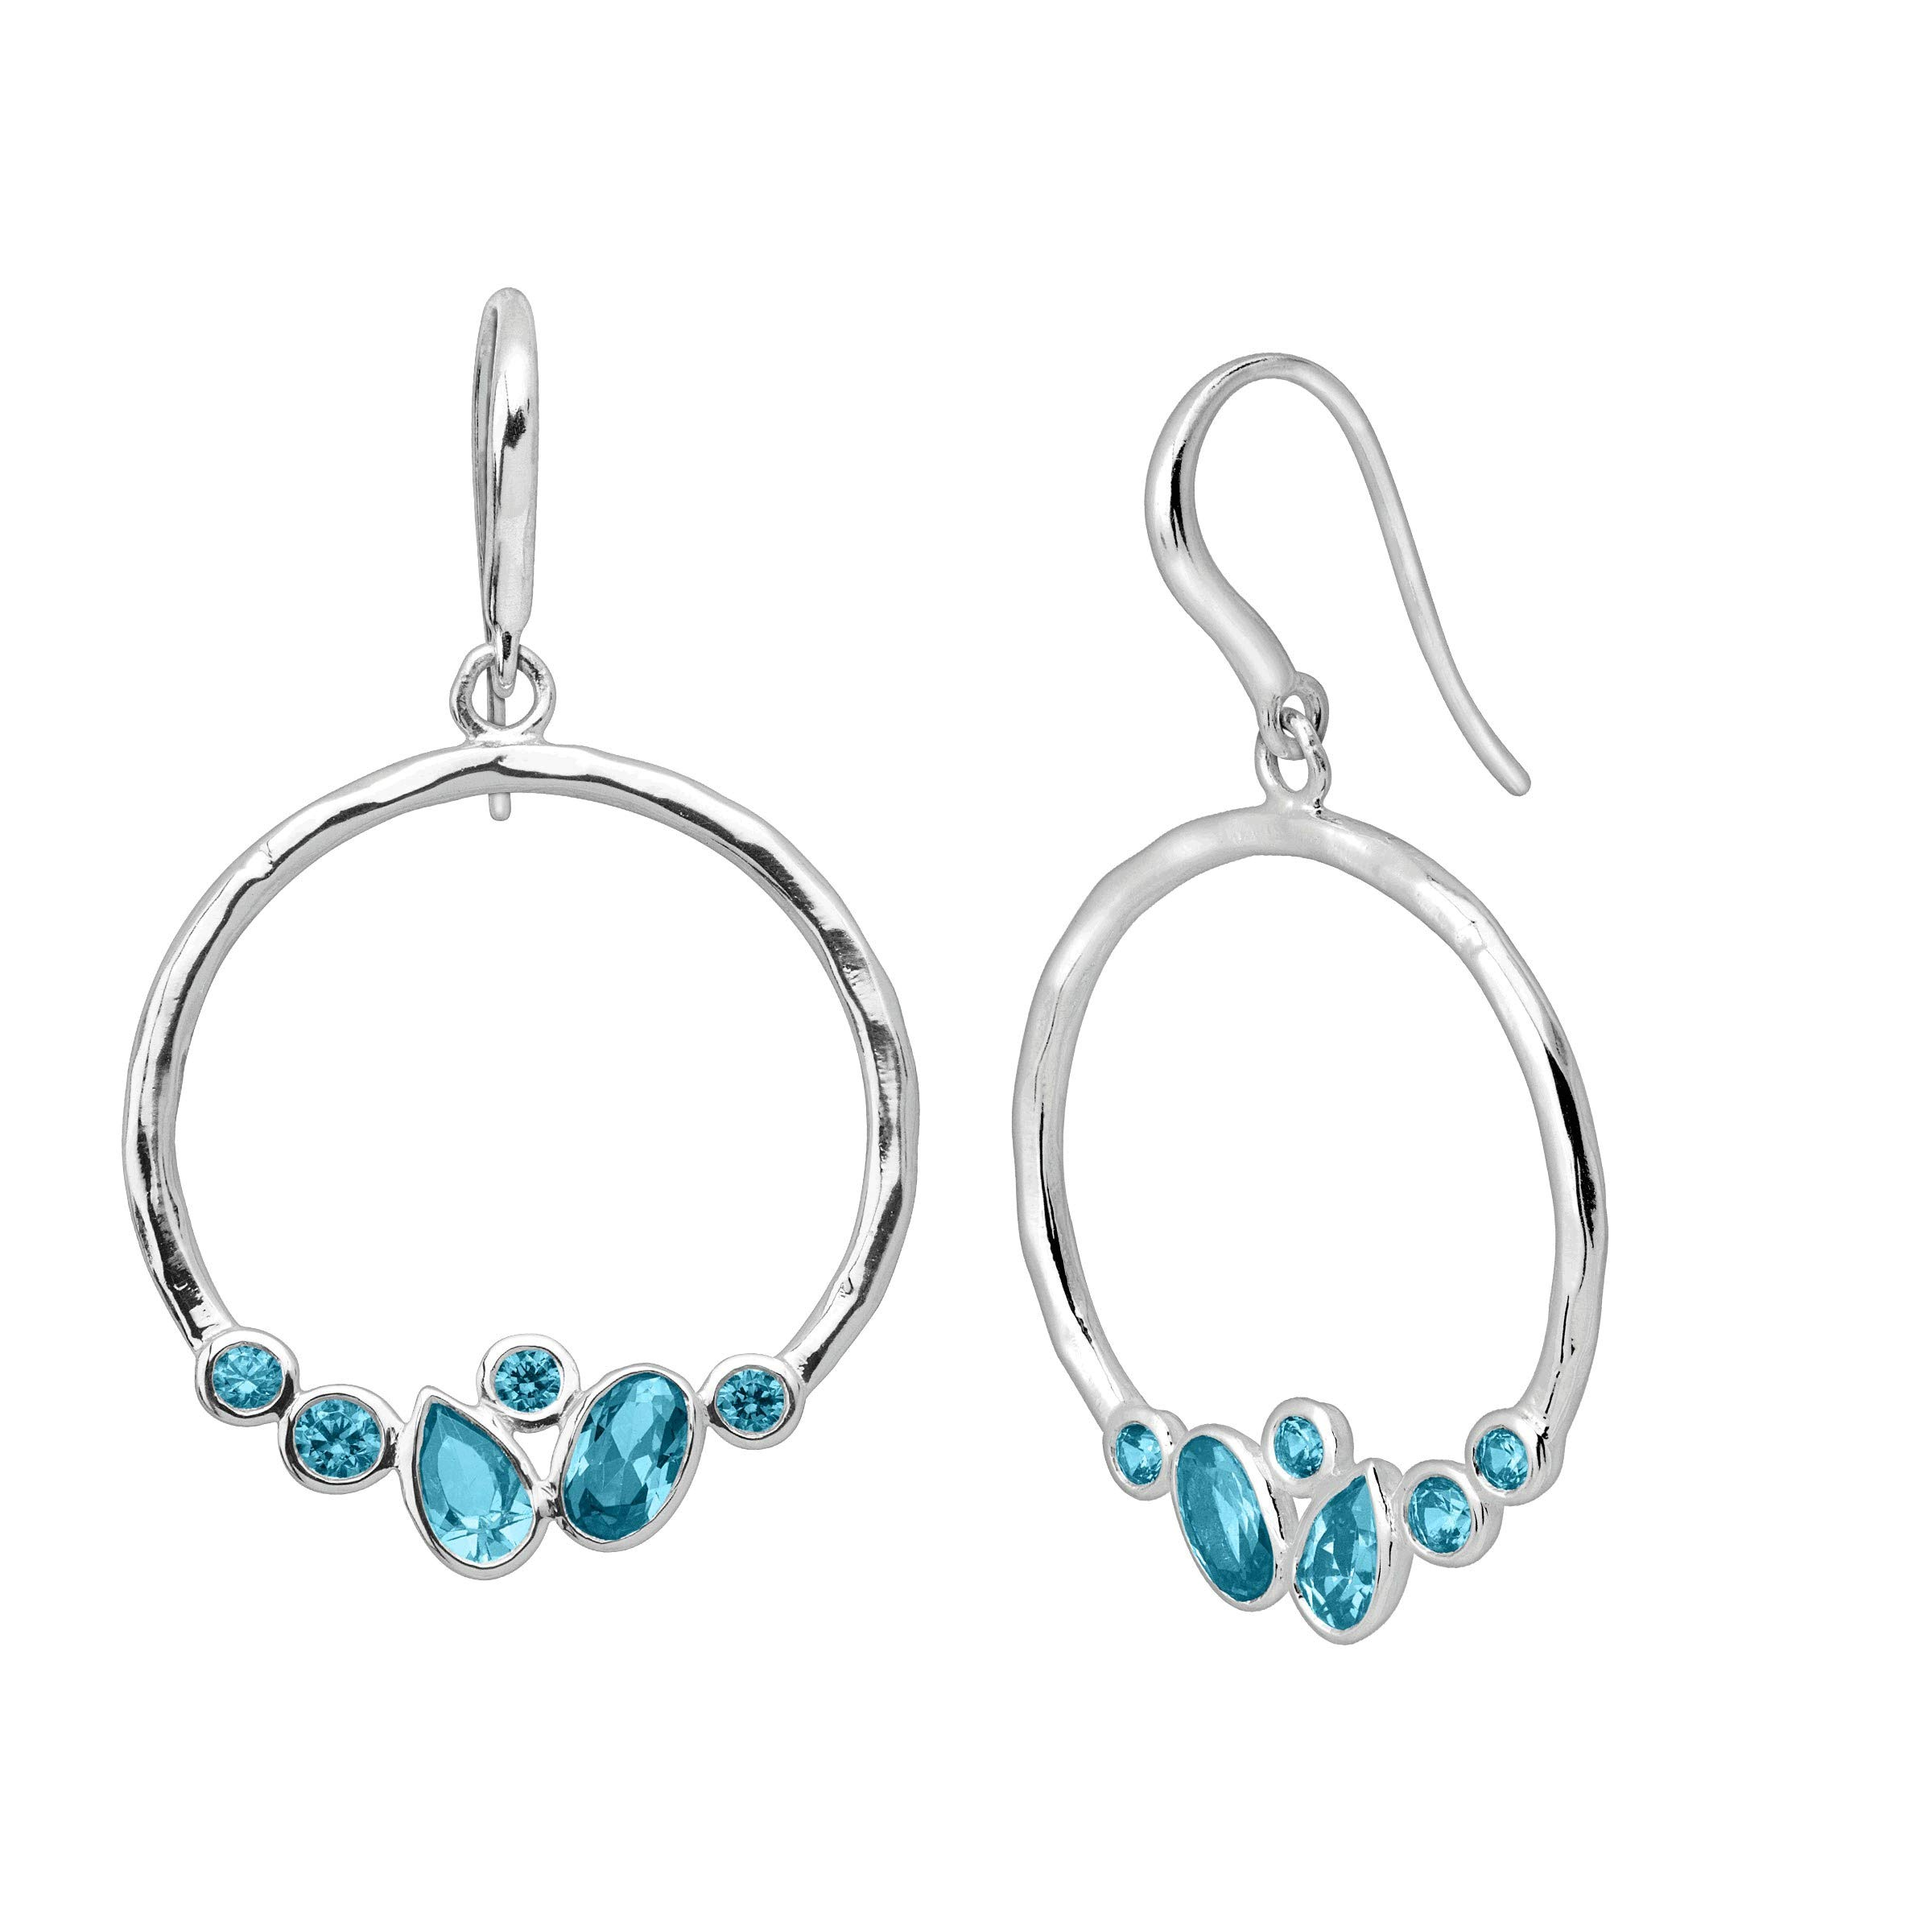 Silpada 'Blue Valley' Natural Aquamarine Drop Earrings in Sterling Silver by Silpada